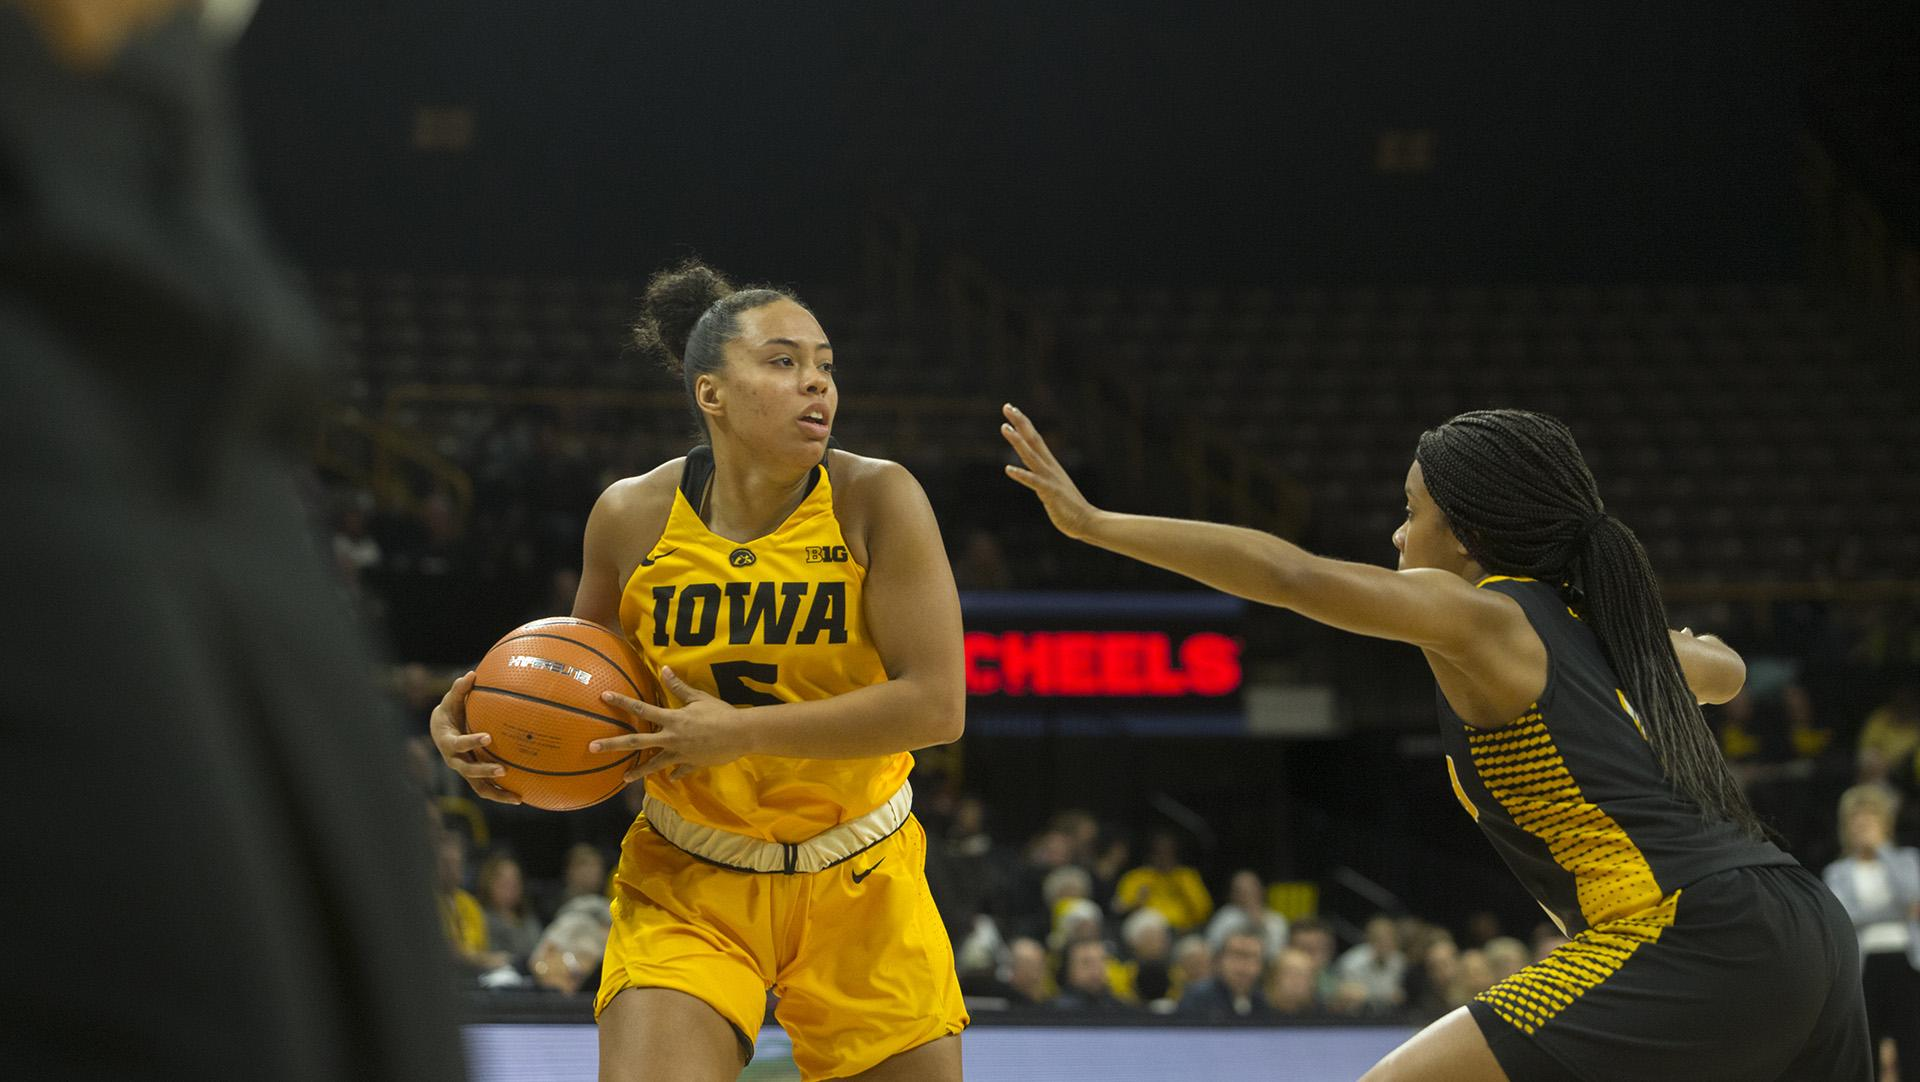 Iowa guard Alexis Sevillian holds the ball during the Iowa/Arkansas-Pine Bluff basketball game in Carver-Hawkeye Arena on Saturday, Dec. 9, 2017. The Hawkeyes defeated the Golden Lions, 85-45. (Lily Smith/The Daily Iowan)